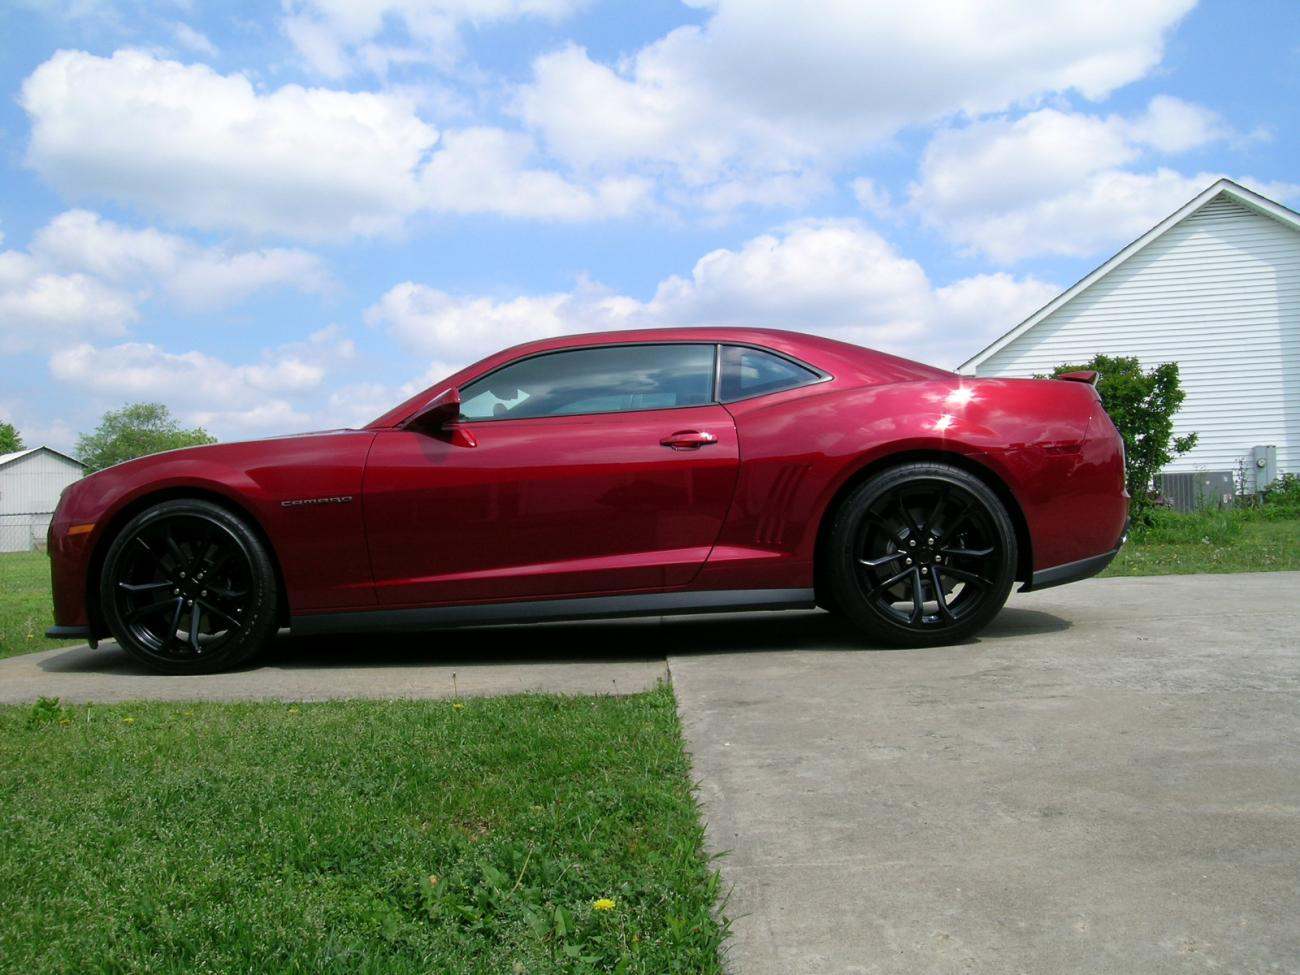 2012 Camaro Zl1 For Sale In Blue Ray Color Html Autos Post